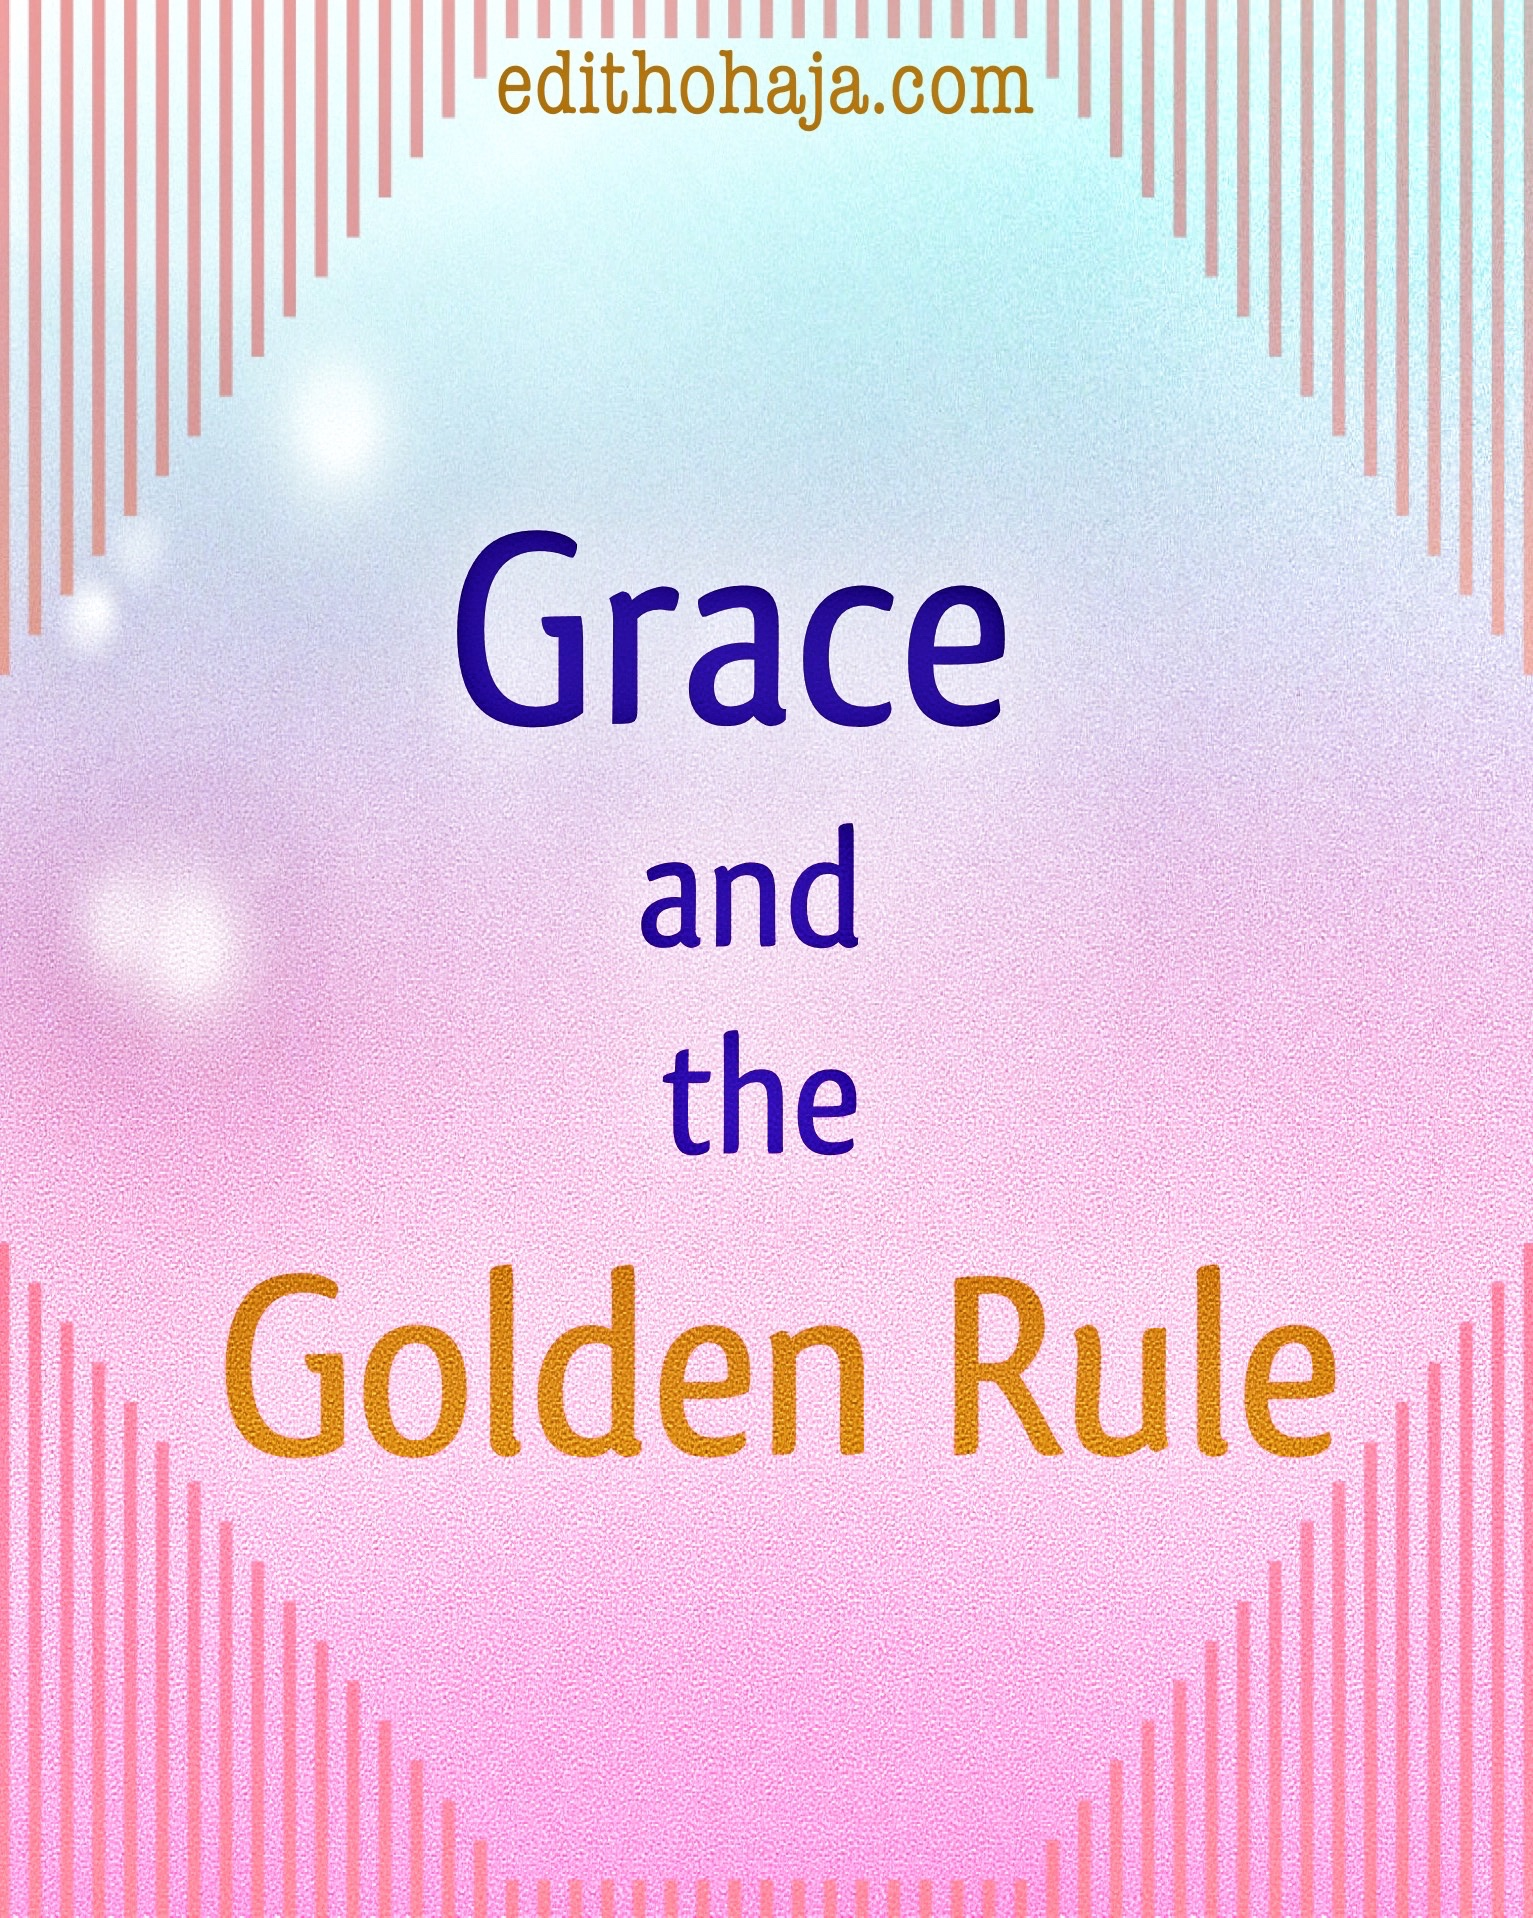 GRACE AND THE GOLDEN RULE